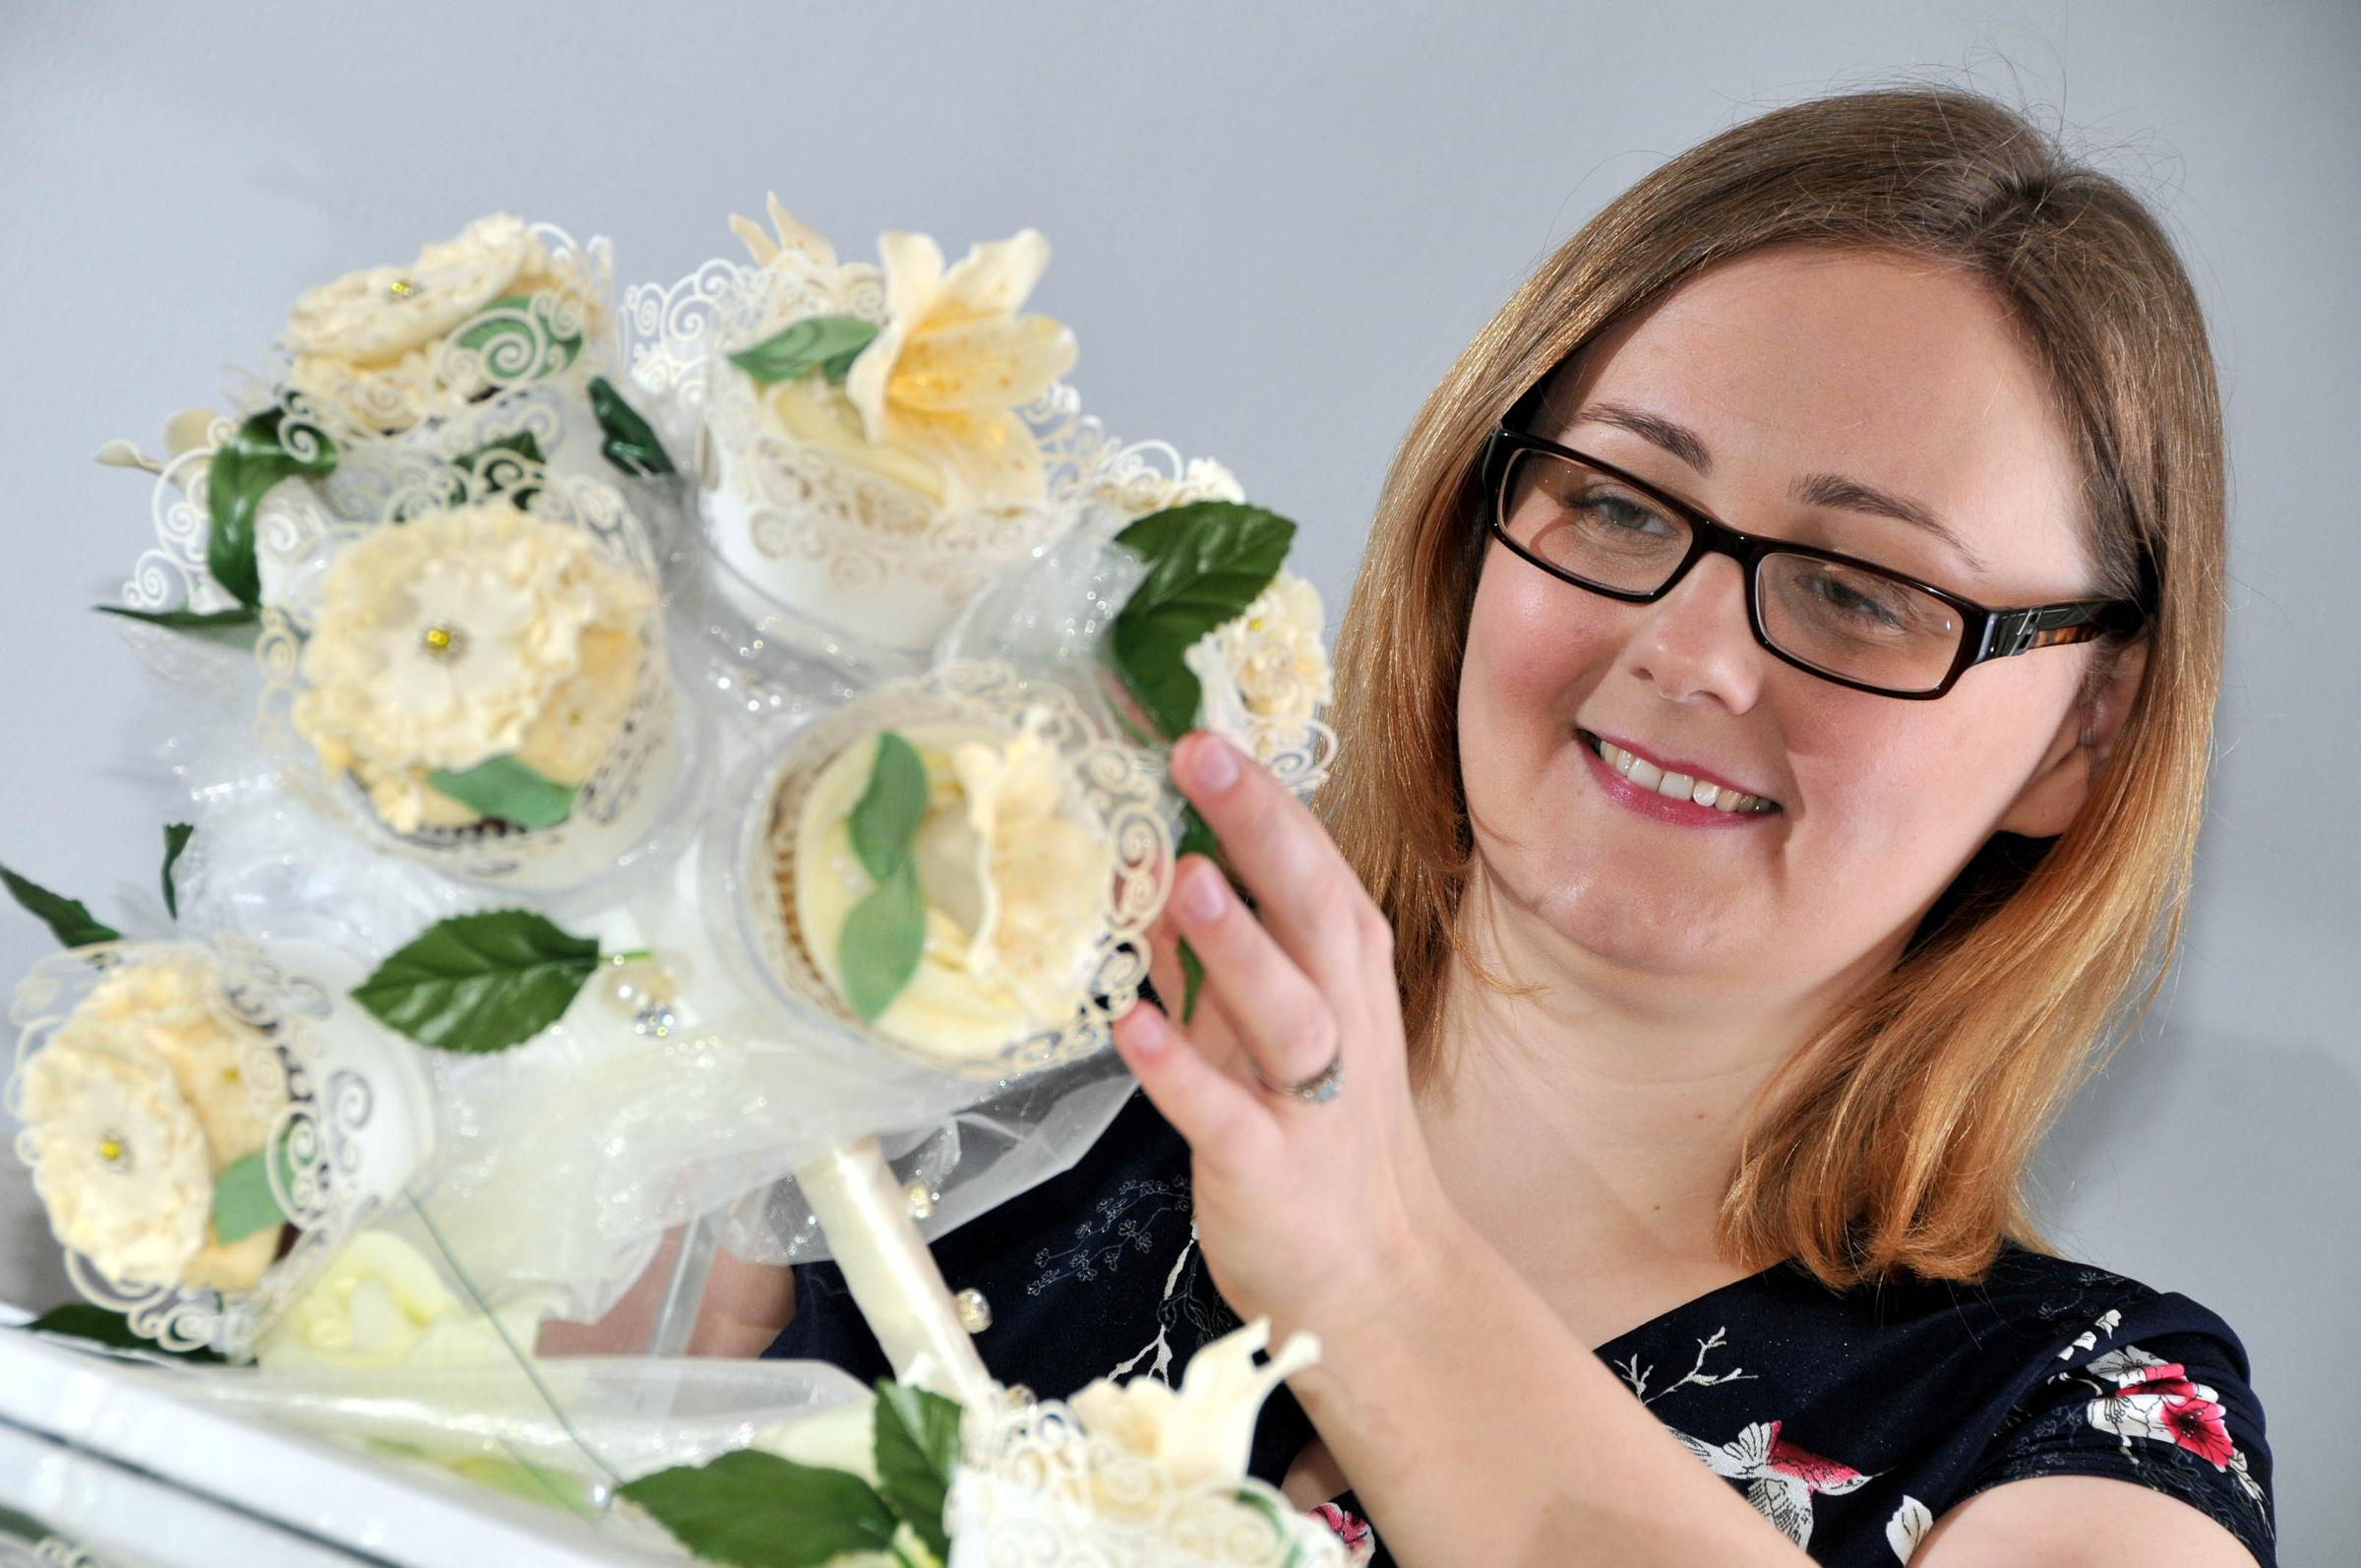 Cupcake bouquet impresses cake judges